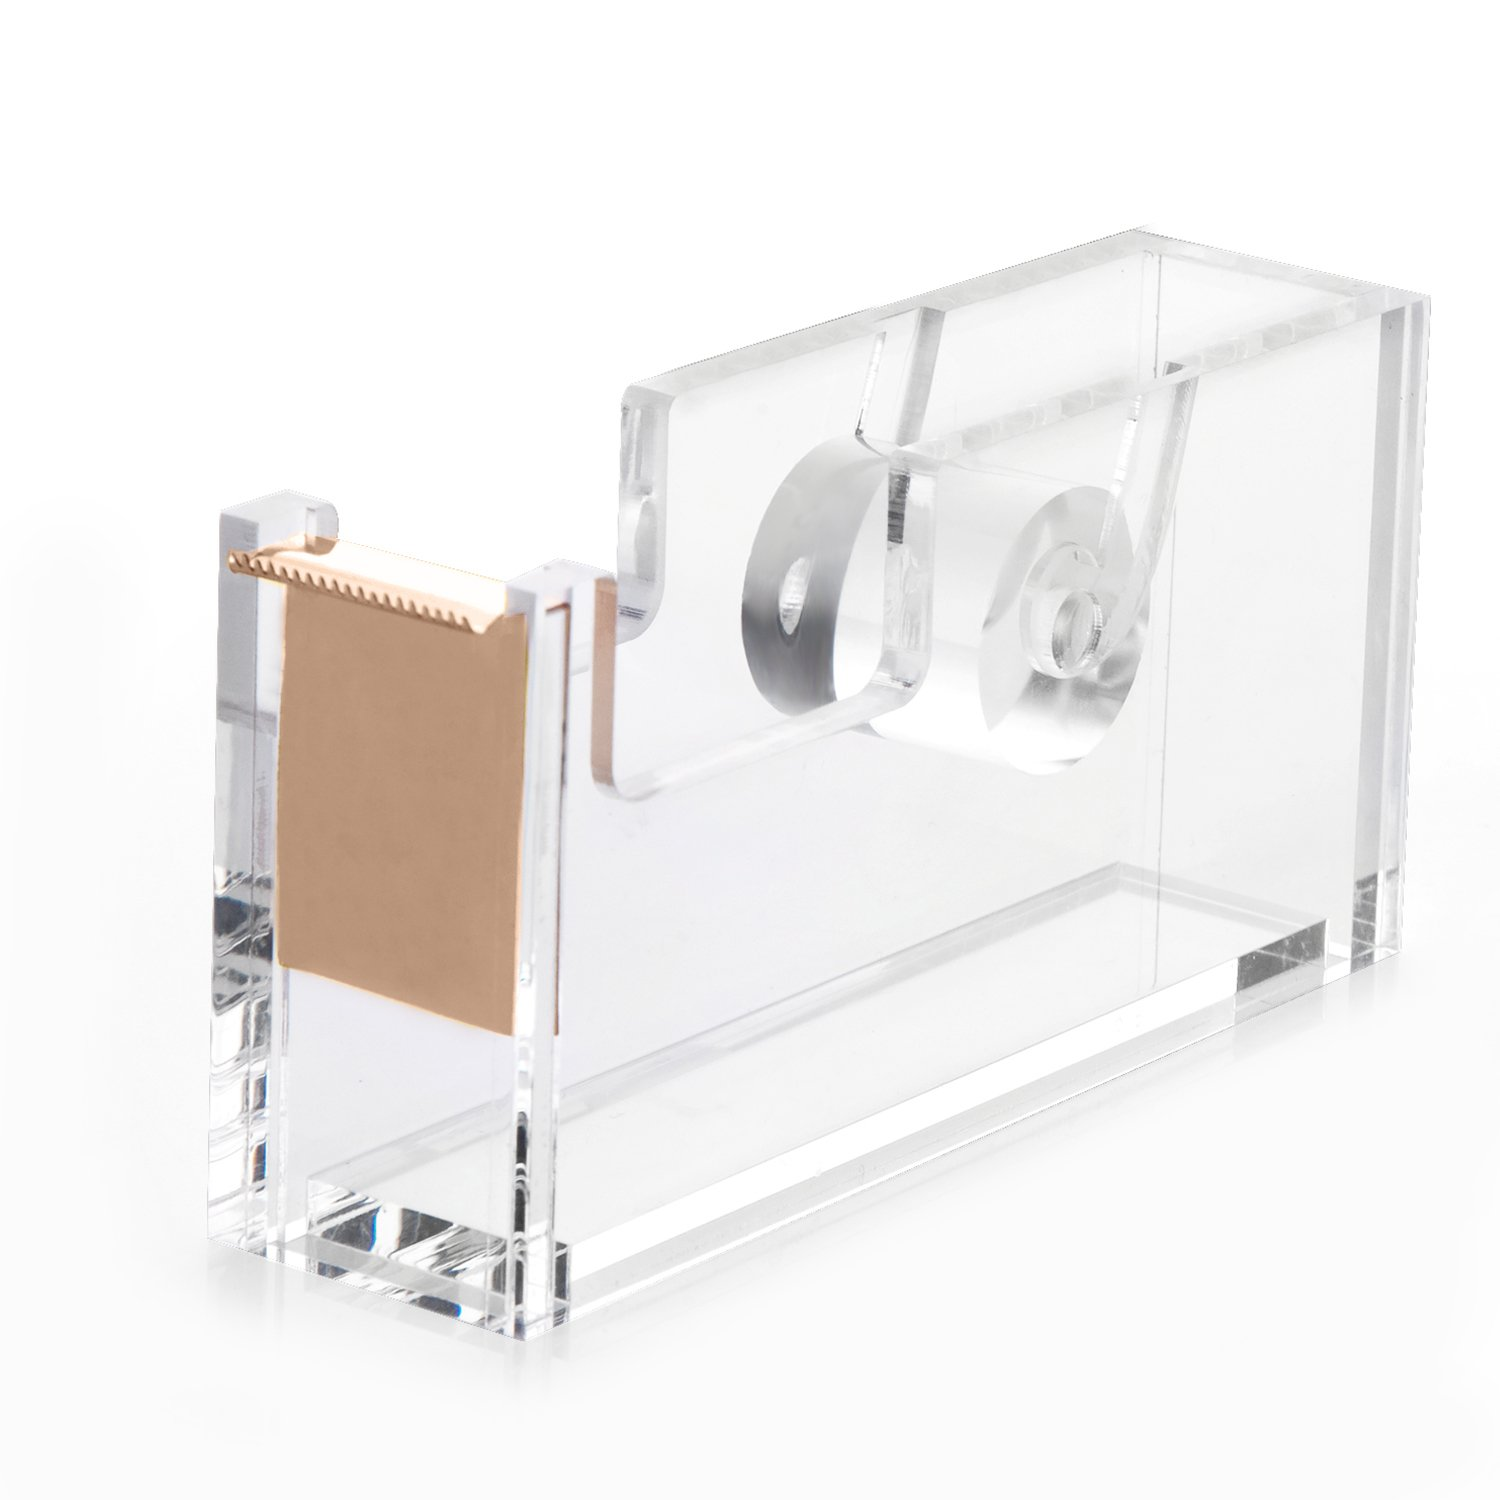 HBlife Acrylic Gold Tape Dispenser (4.7 x 1.3 x 2.4 inches), Modern Design Office Desk Accessory